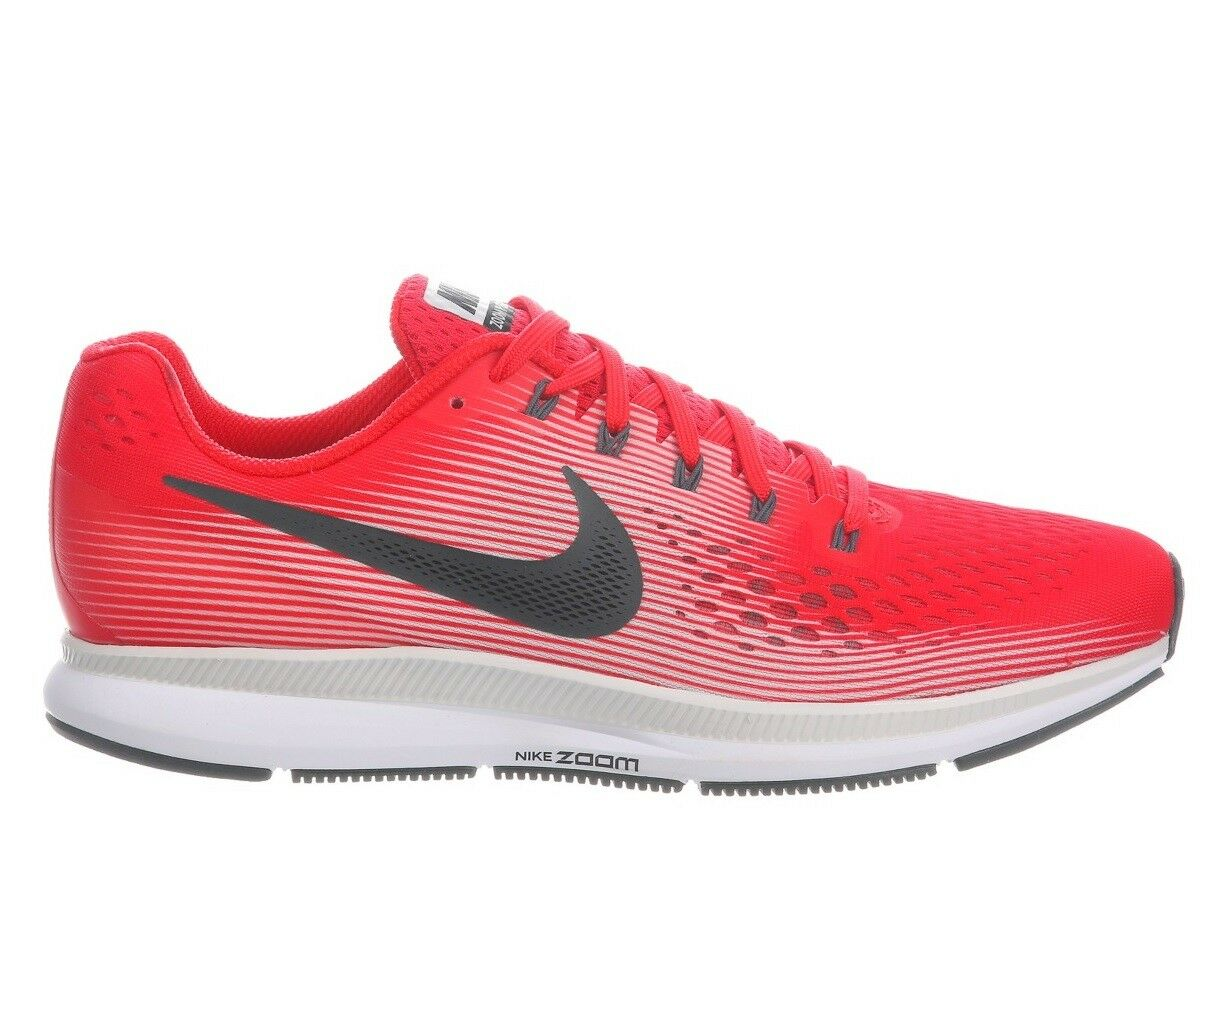 Nike Air Zoom Pegasus 34 Mens 880555-602 Speed Red Mesh Running shoes Size 9.5